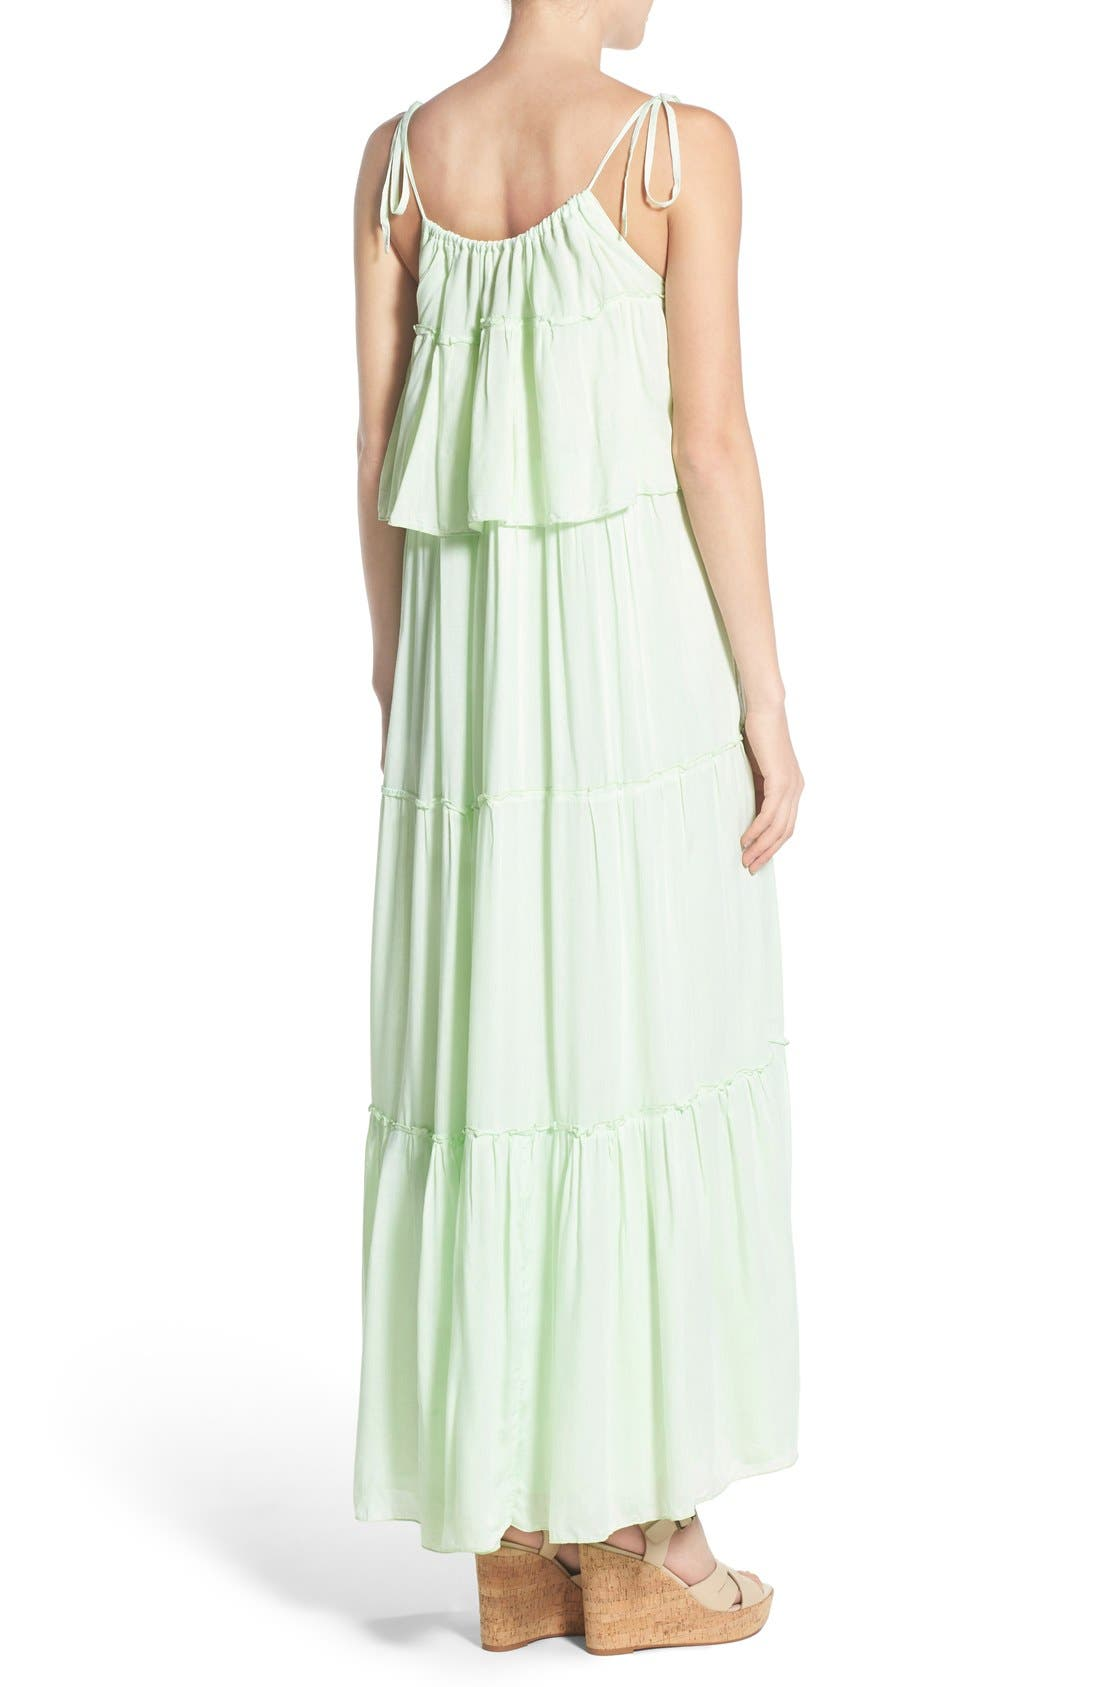 'Songbird' Popover Maternity/Nursing Maxi Dress,                             Alternate thumbnail 4, color,                             MINT